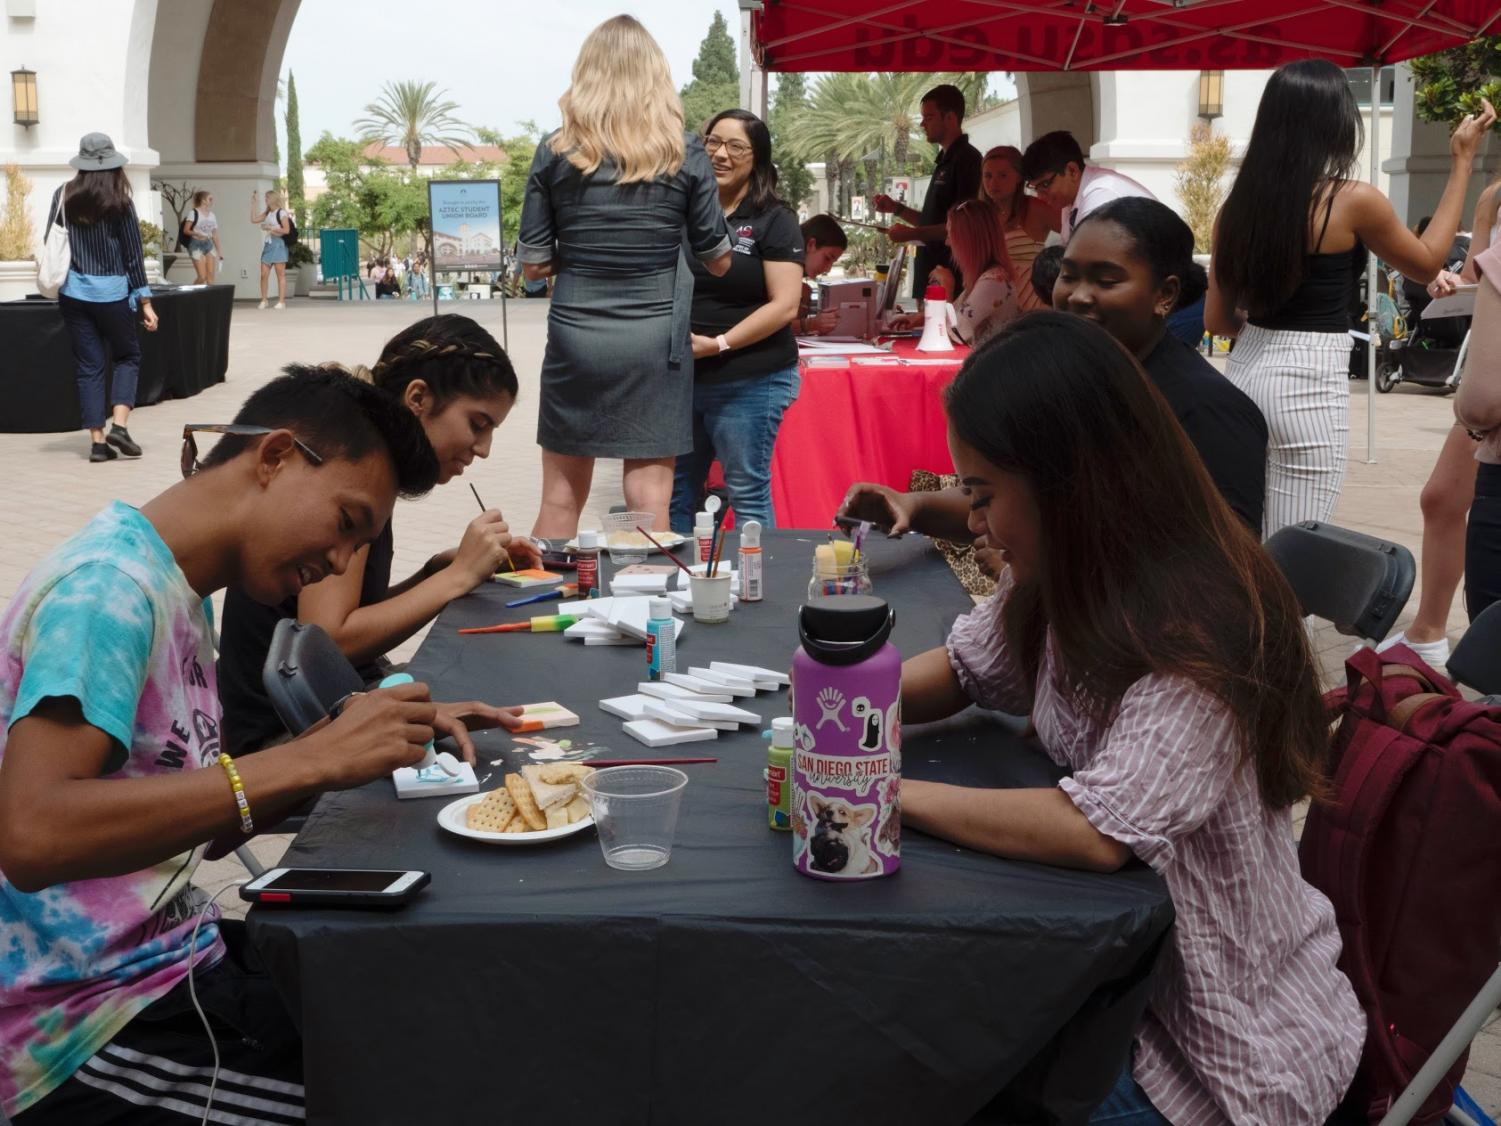 Paint your political scene was another way for students to get involved in the political conversation at the Conrad Prebys Aztec Student Union.